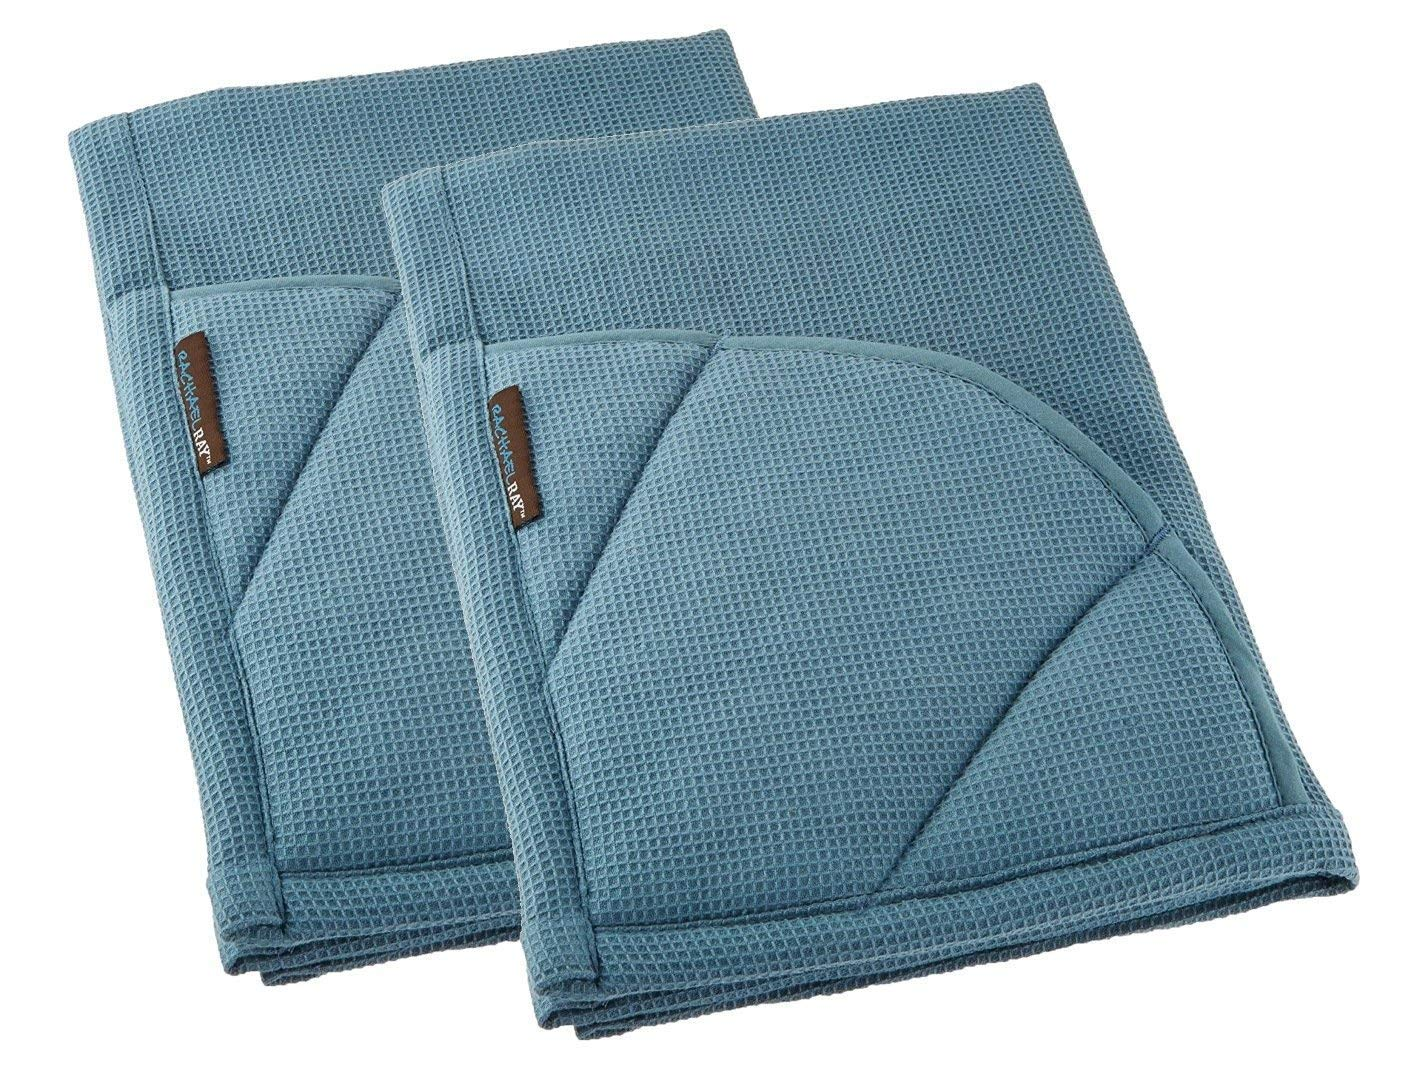 Rachael Ray Kitchen Towel and Oven Glove Moppine – A 2-in-1 Ultra Absorbent Kitchen Towel with Heat Resistant Pot-Holder Padded Pockets to Handle Hot Cookware and Bakeware - Smoke Blue/Pack of 2